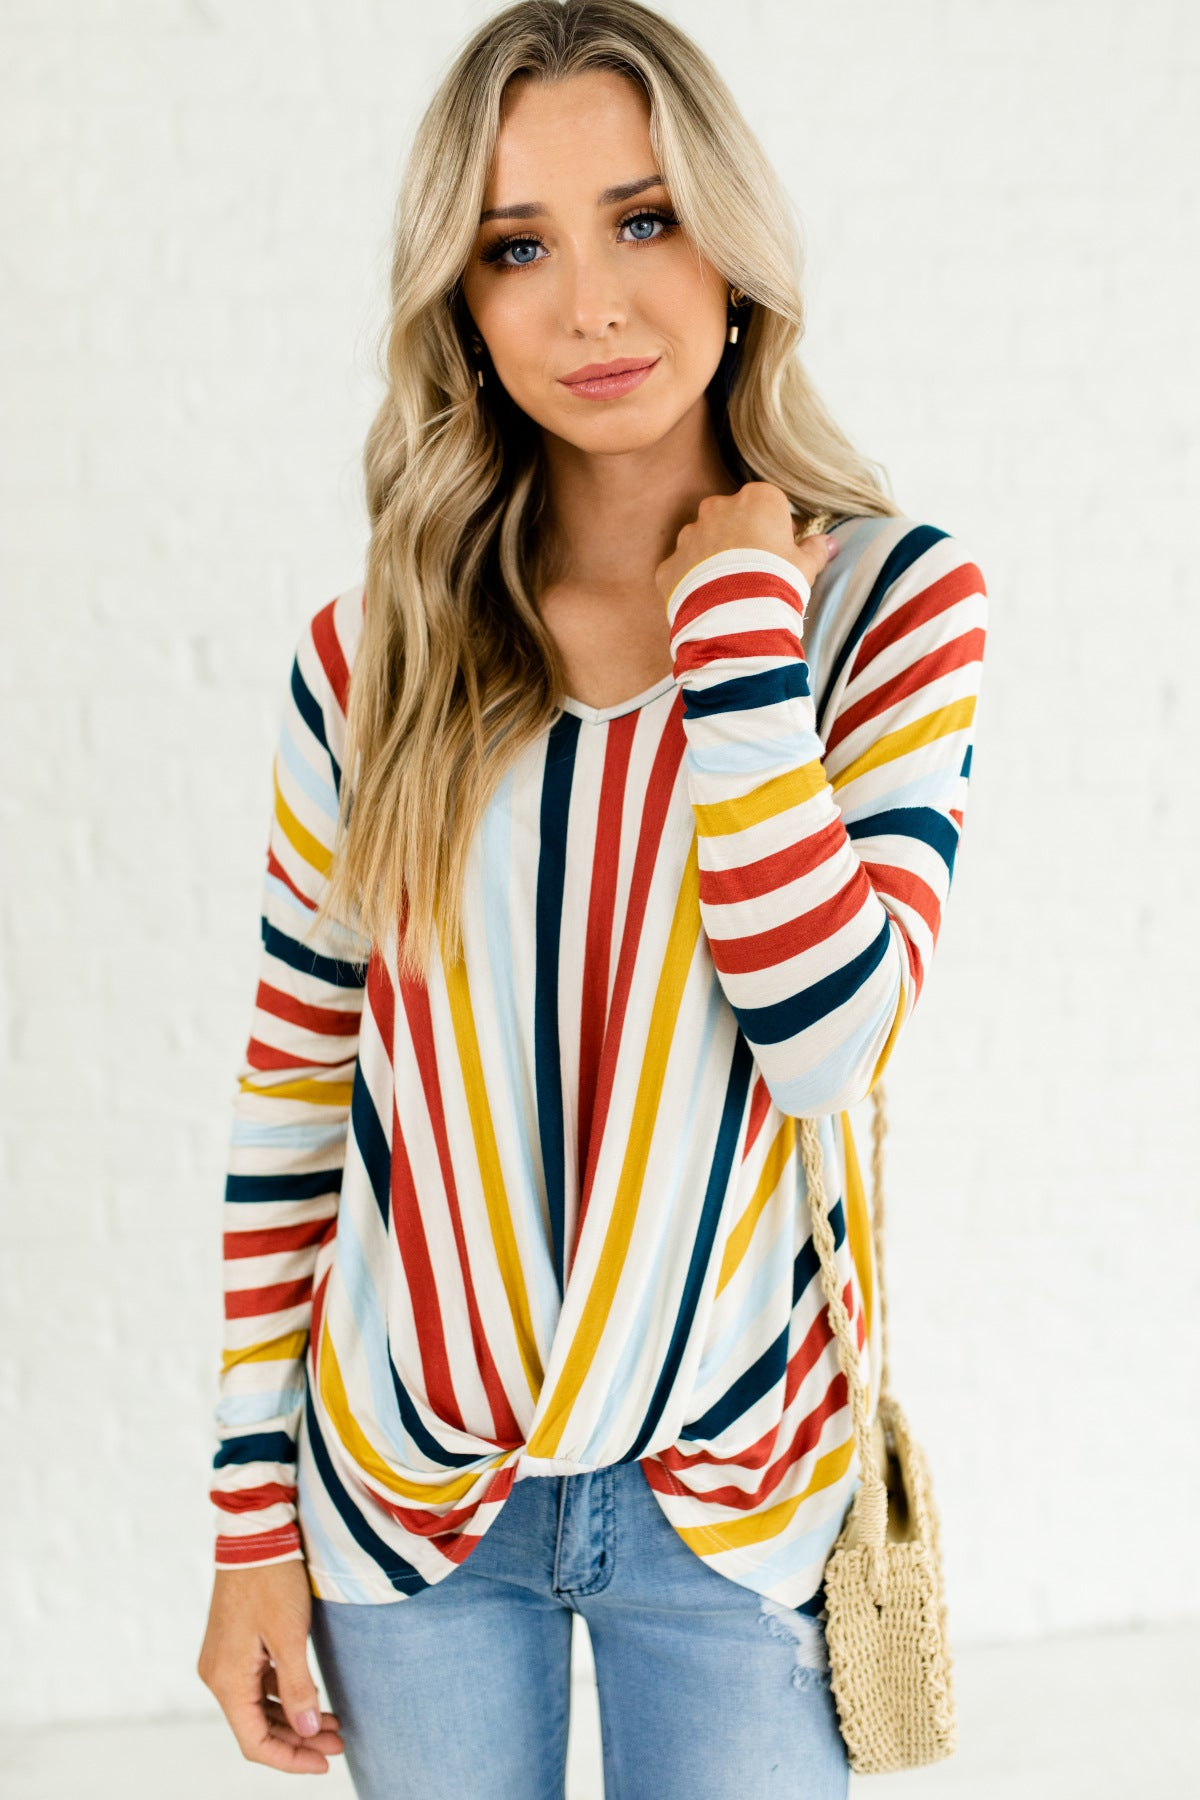 Cream Red Light Blue Yellow Navy Striped Oversized Front Knot Tops Affordable Online Boutique